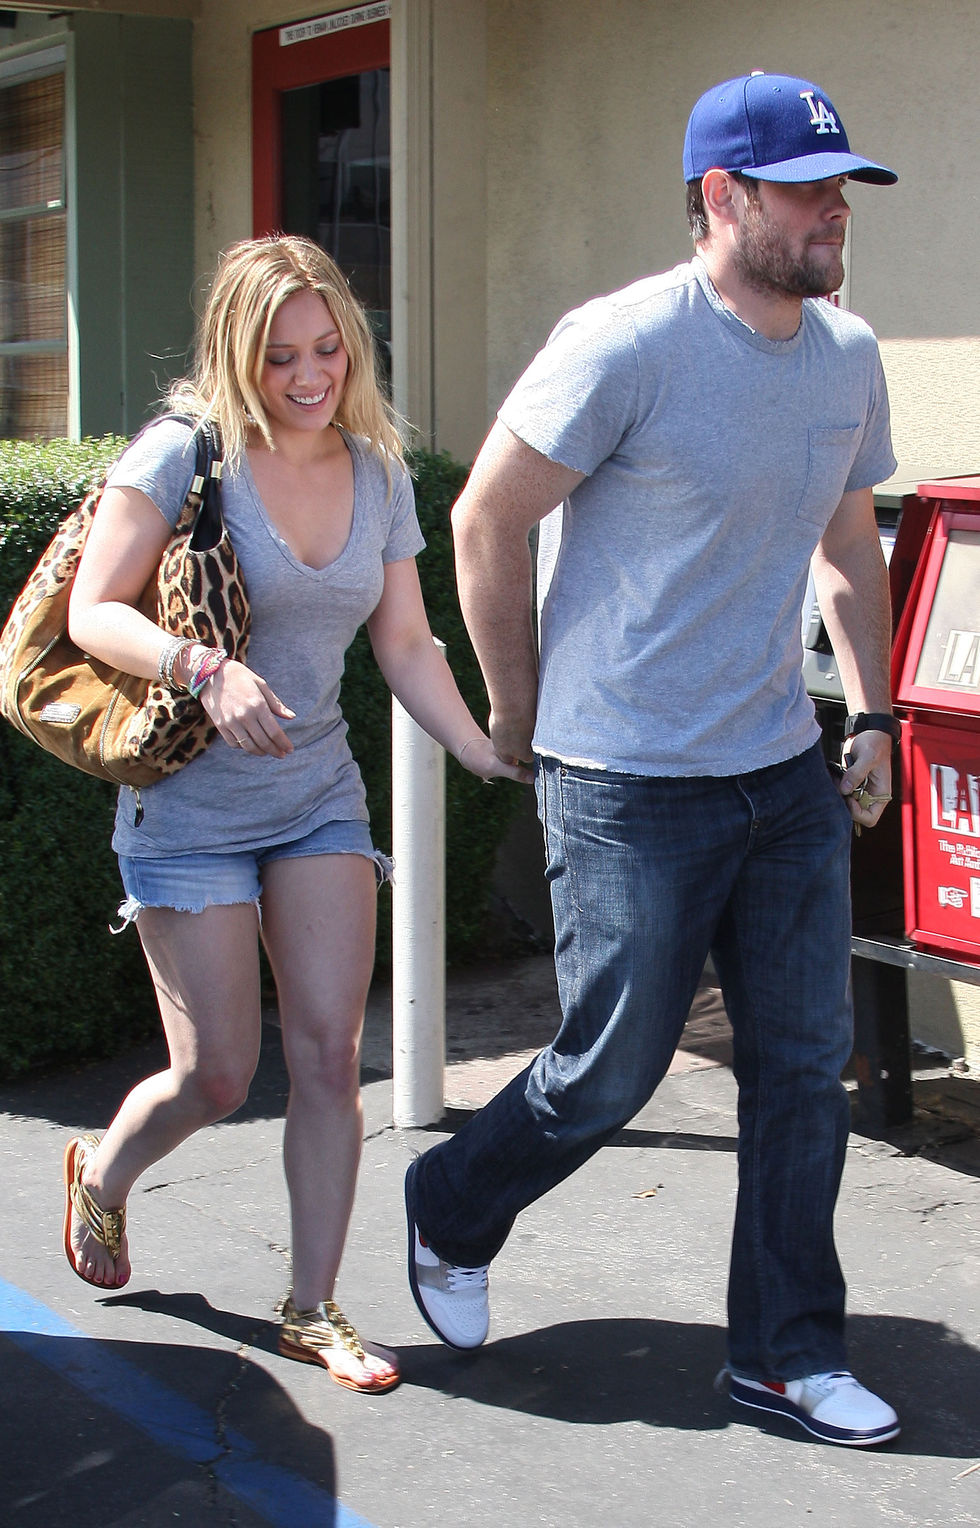 hilary-duff-cleavage-candids-at-hugo-restaurant-in-hollywood-01